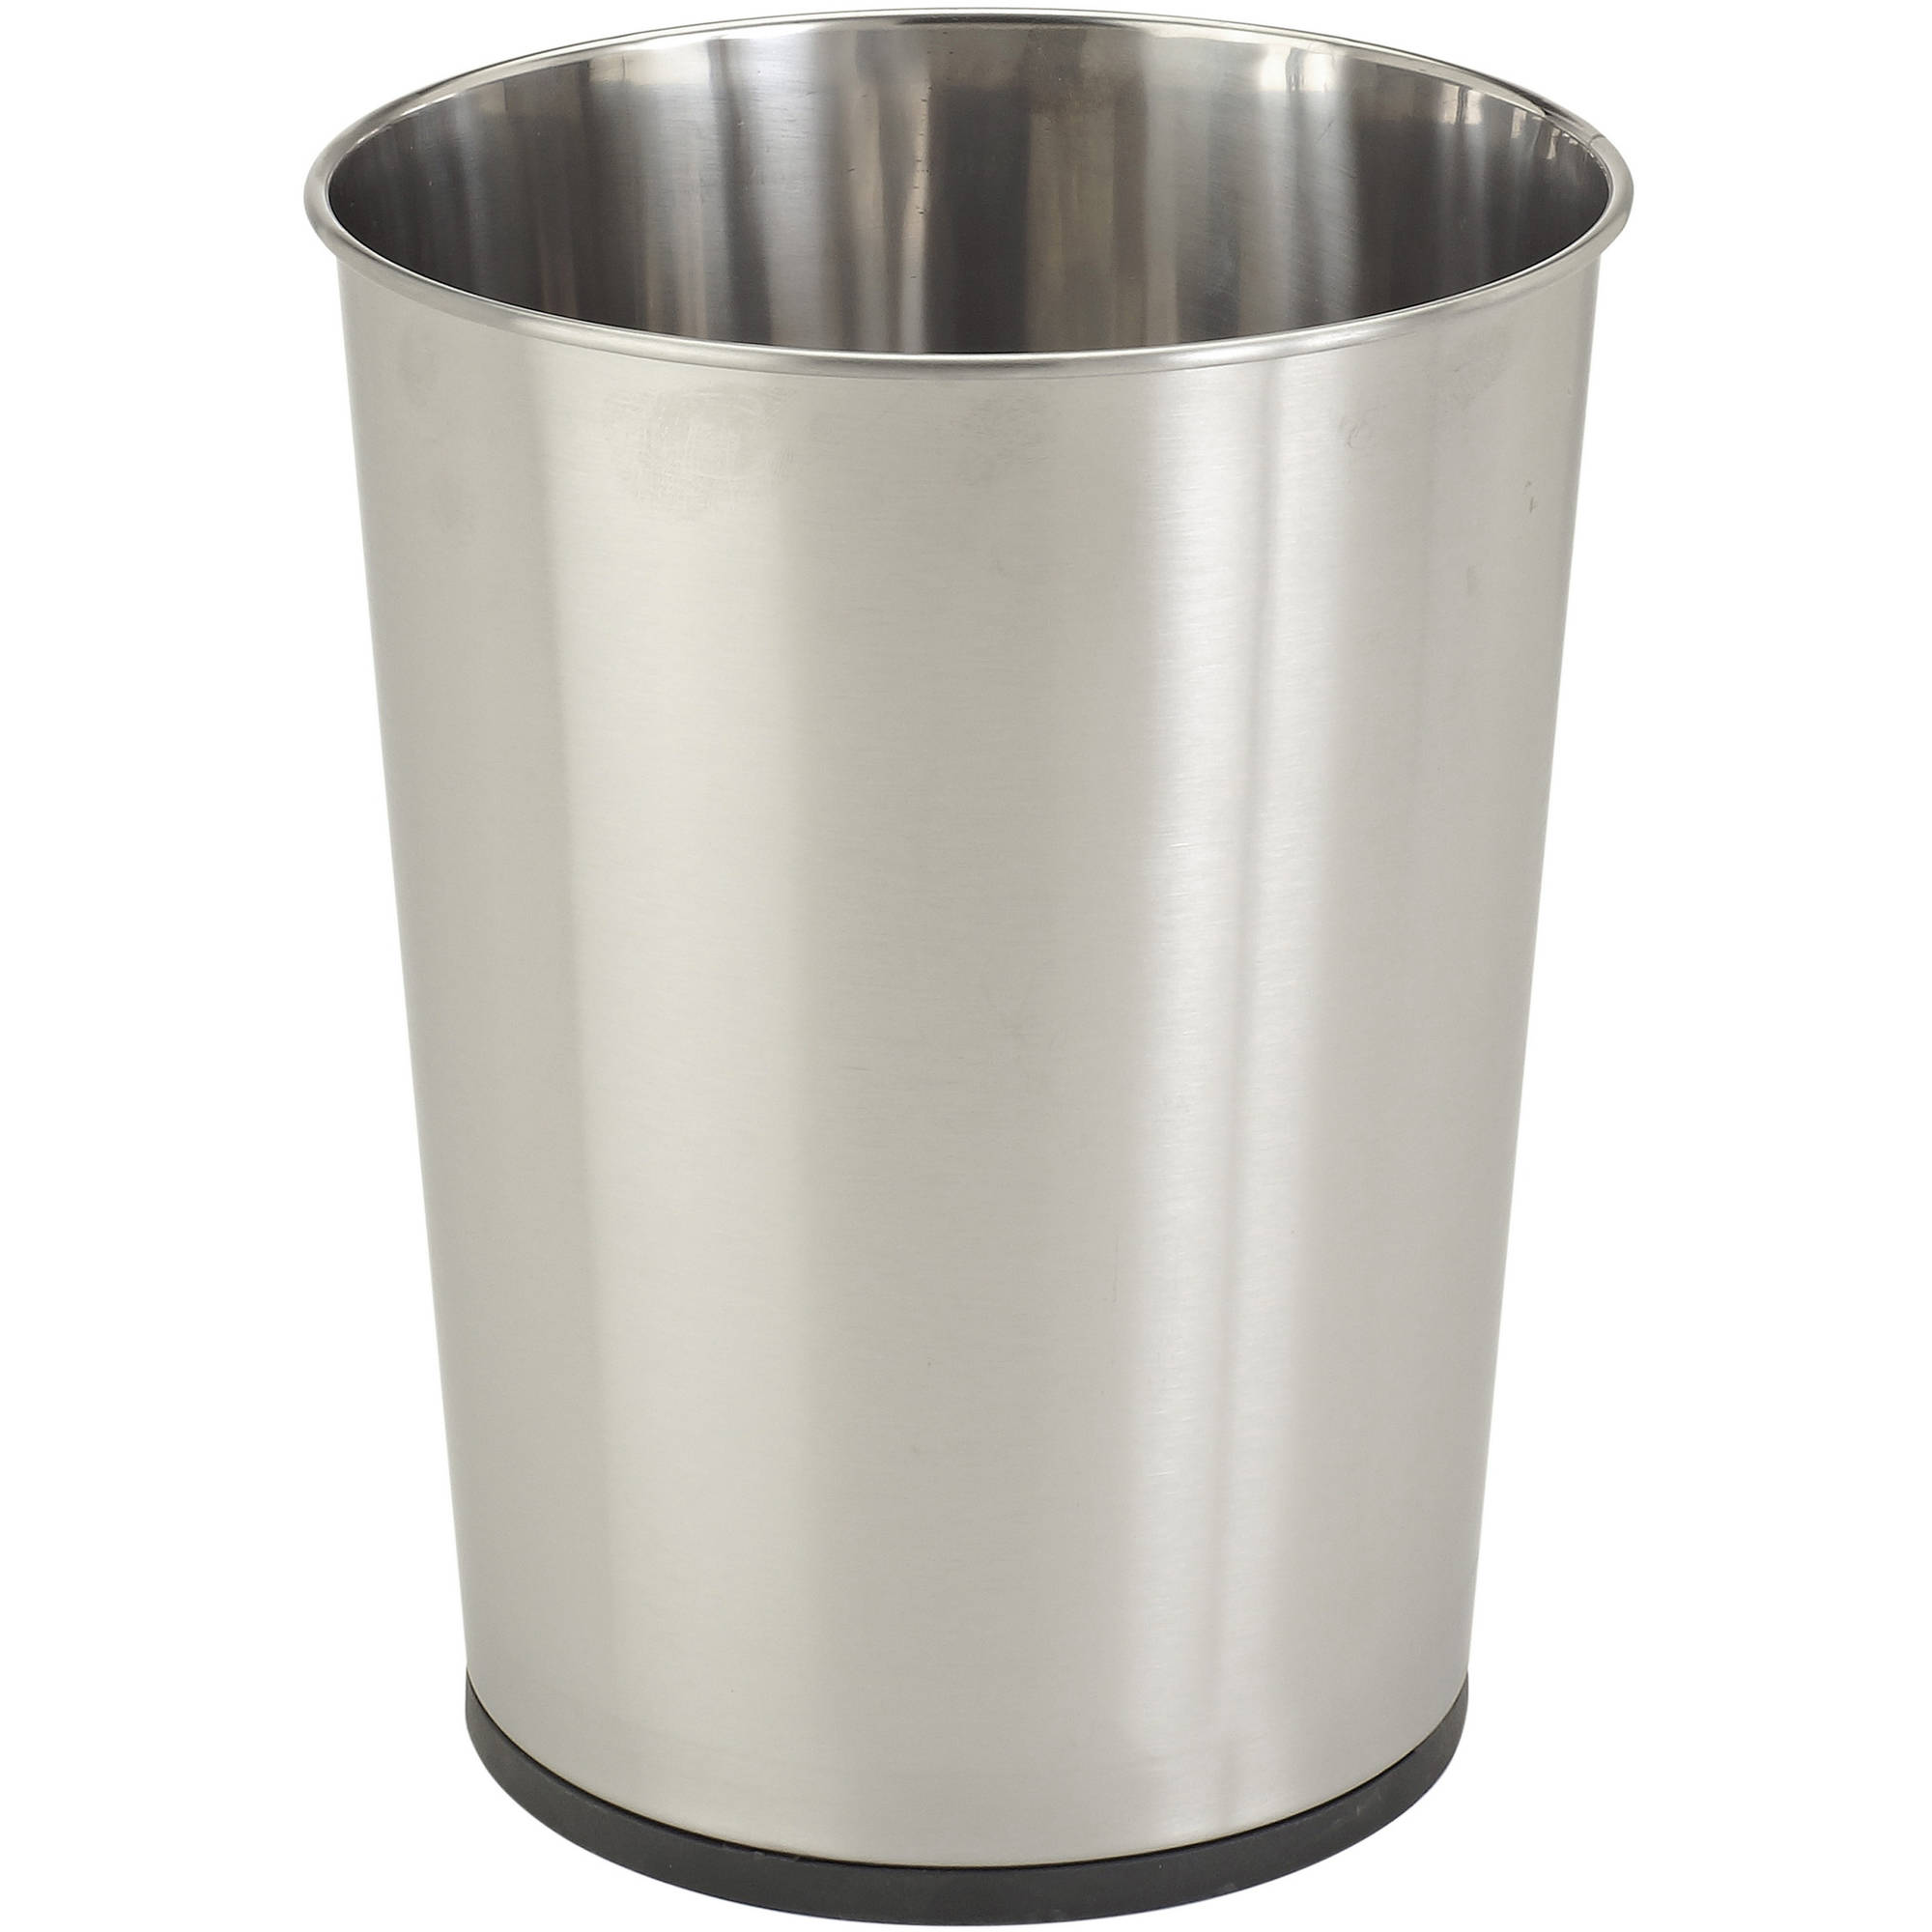 "Click here to buy Bath Bliss 5L Waste Trash Bin, Open Top, 7.87"" x 5.91""9.65"" by Kennedy International, INC.."